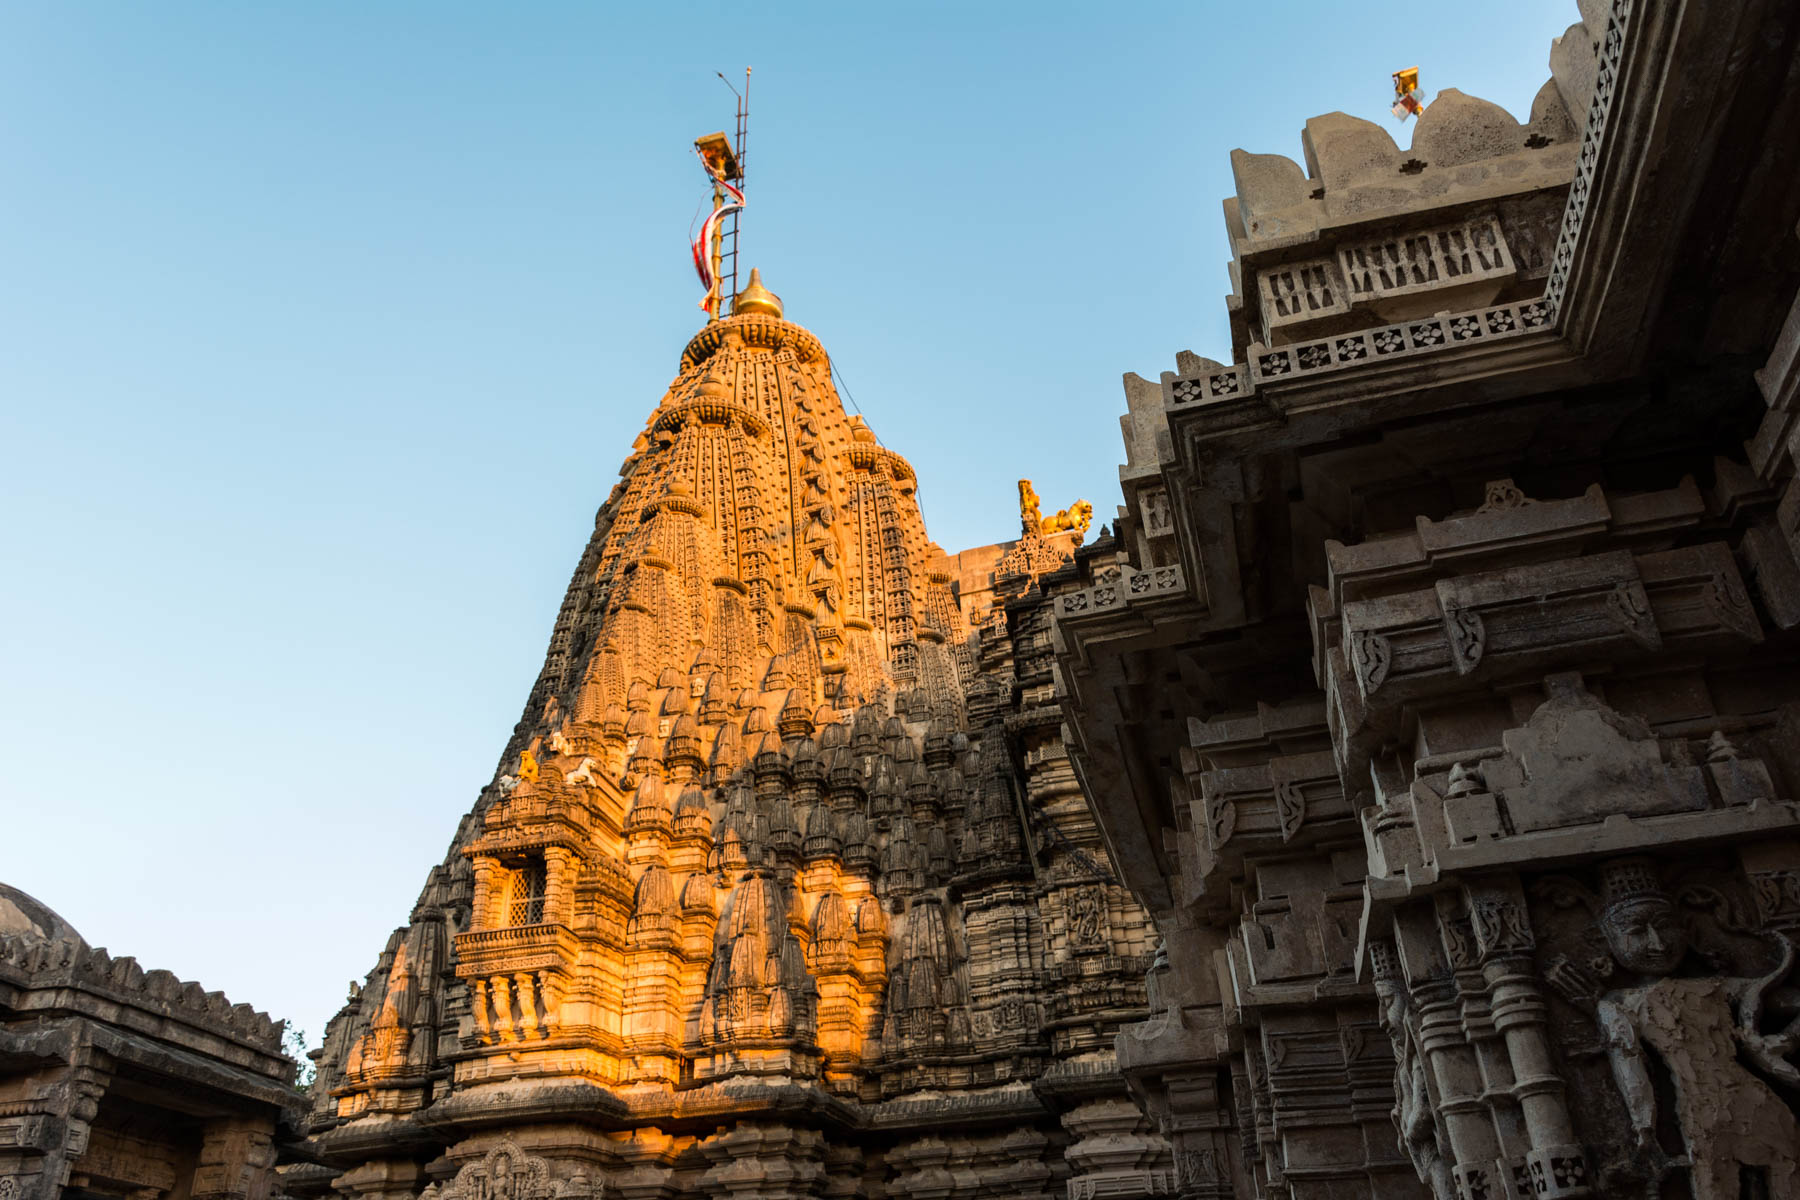 Jain pilgrimage in Palitana, India - Sunrise on the Adinath temple in Palitana - Lost With Purpose